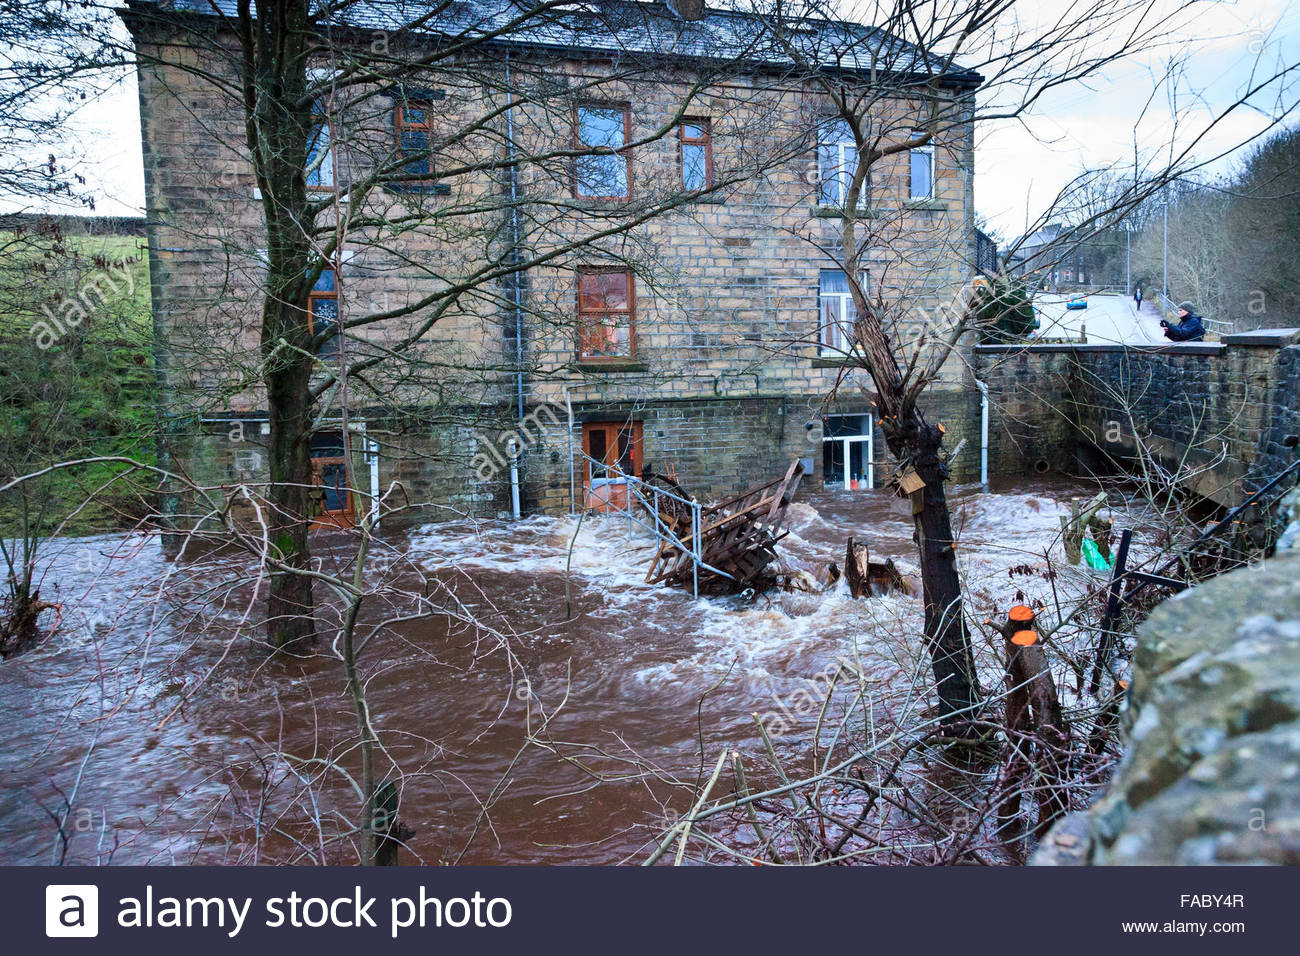 Providence Lane,Haworth, West Yorkshire, UK. 26 December 2015. Houses next to swollen River Worth  after heavy rainfall. Stock Photo